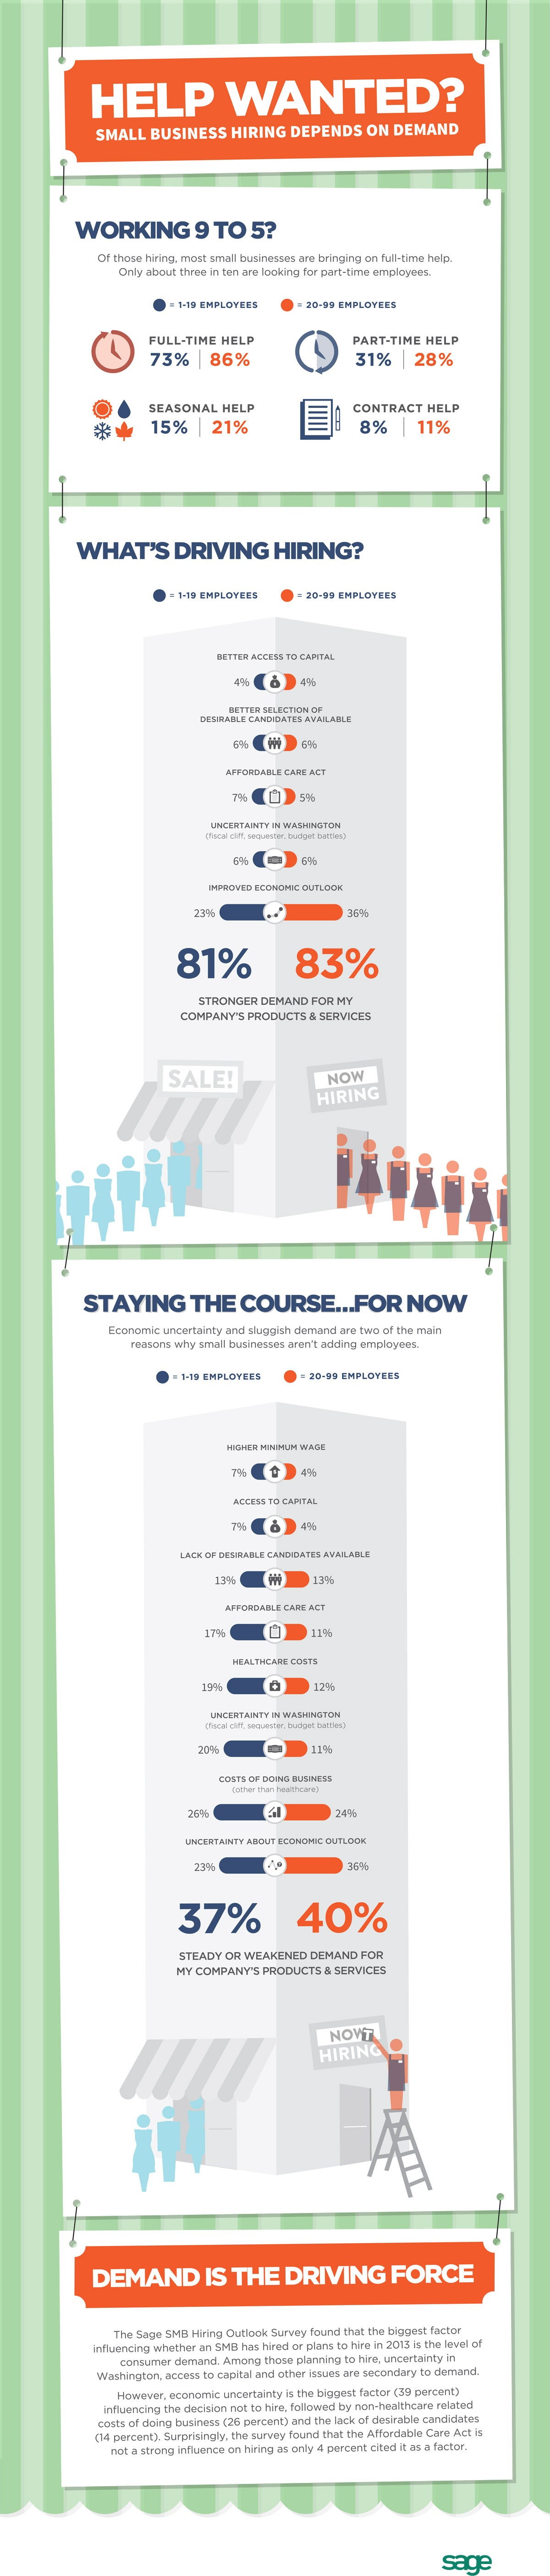 What Really Motivates a Small Business to Hire? (Infographic)